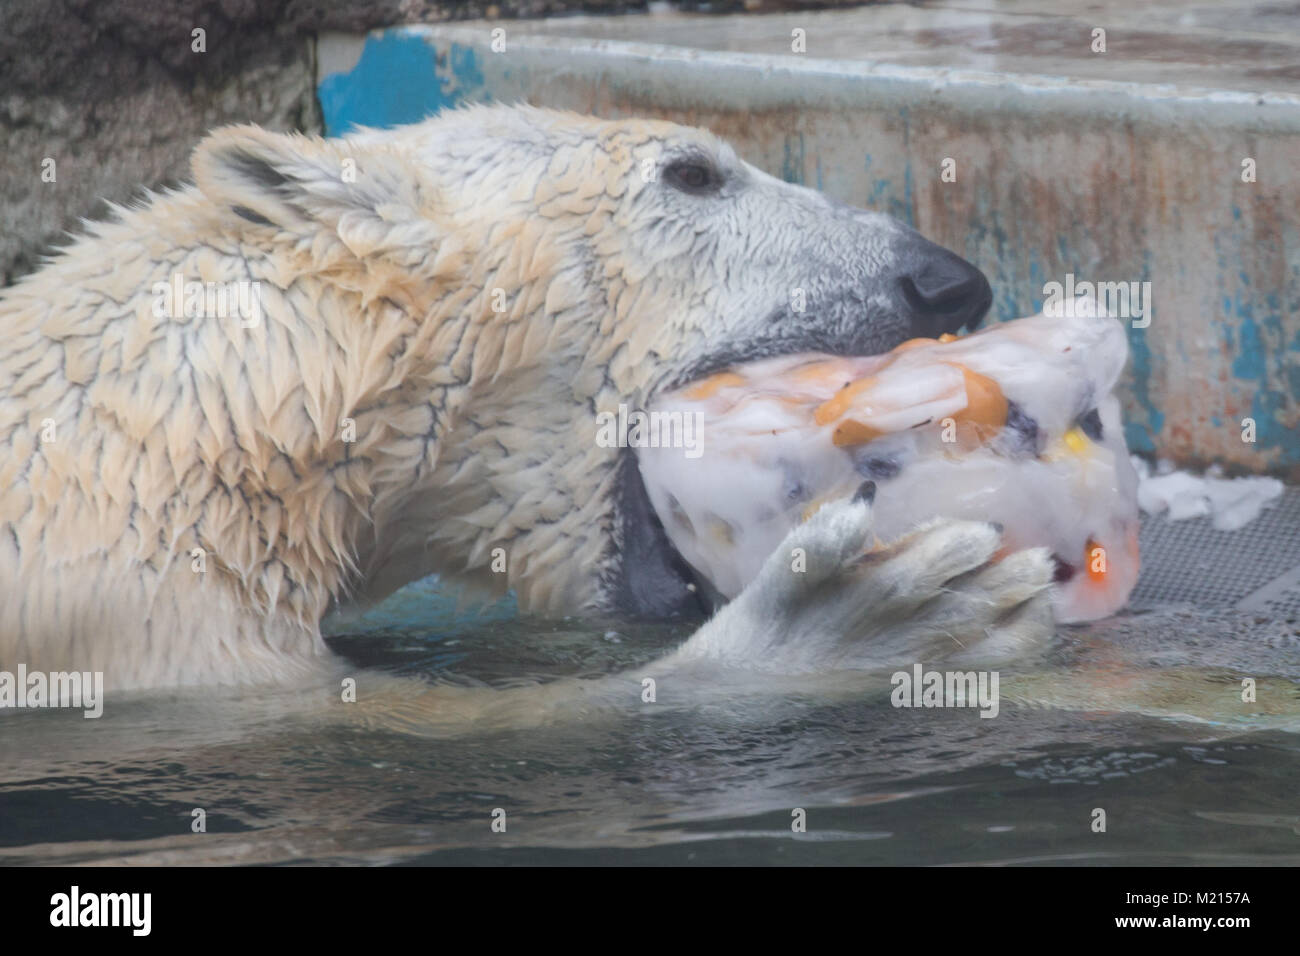 Polar Bear Eats Fish In Stock Photos & Polar Bear Eats Fish